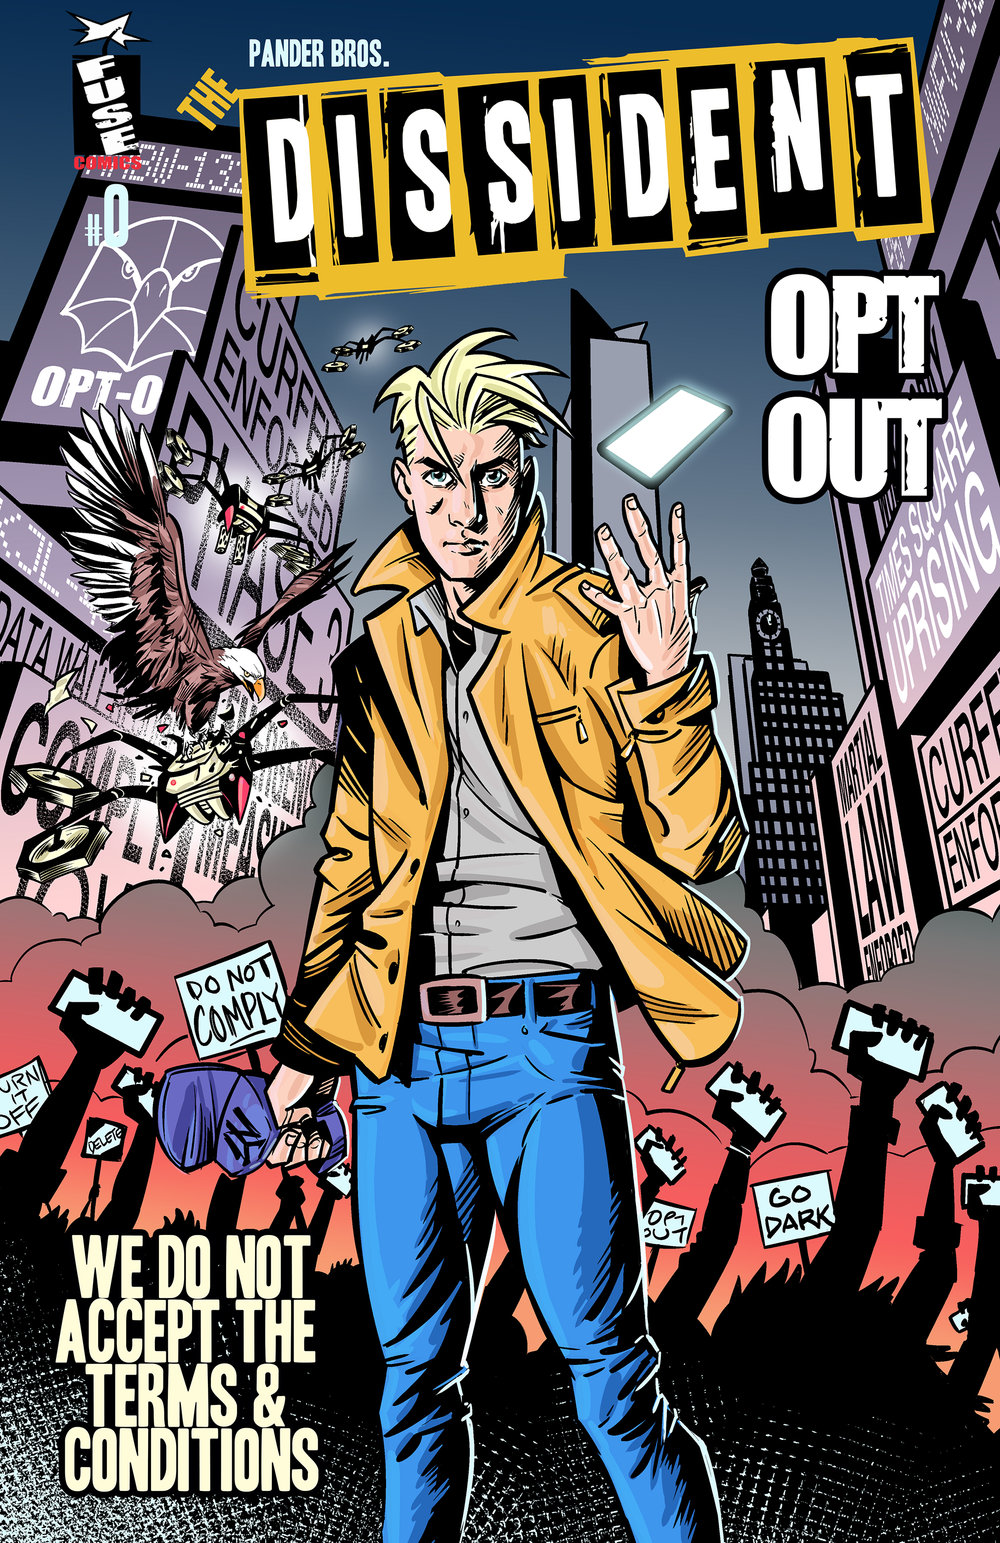 The DISSIDENT: Opt Out - (Variant Cover)  - Art by Pander Bros.